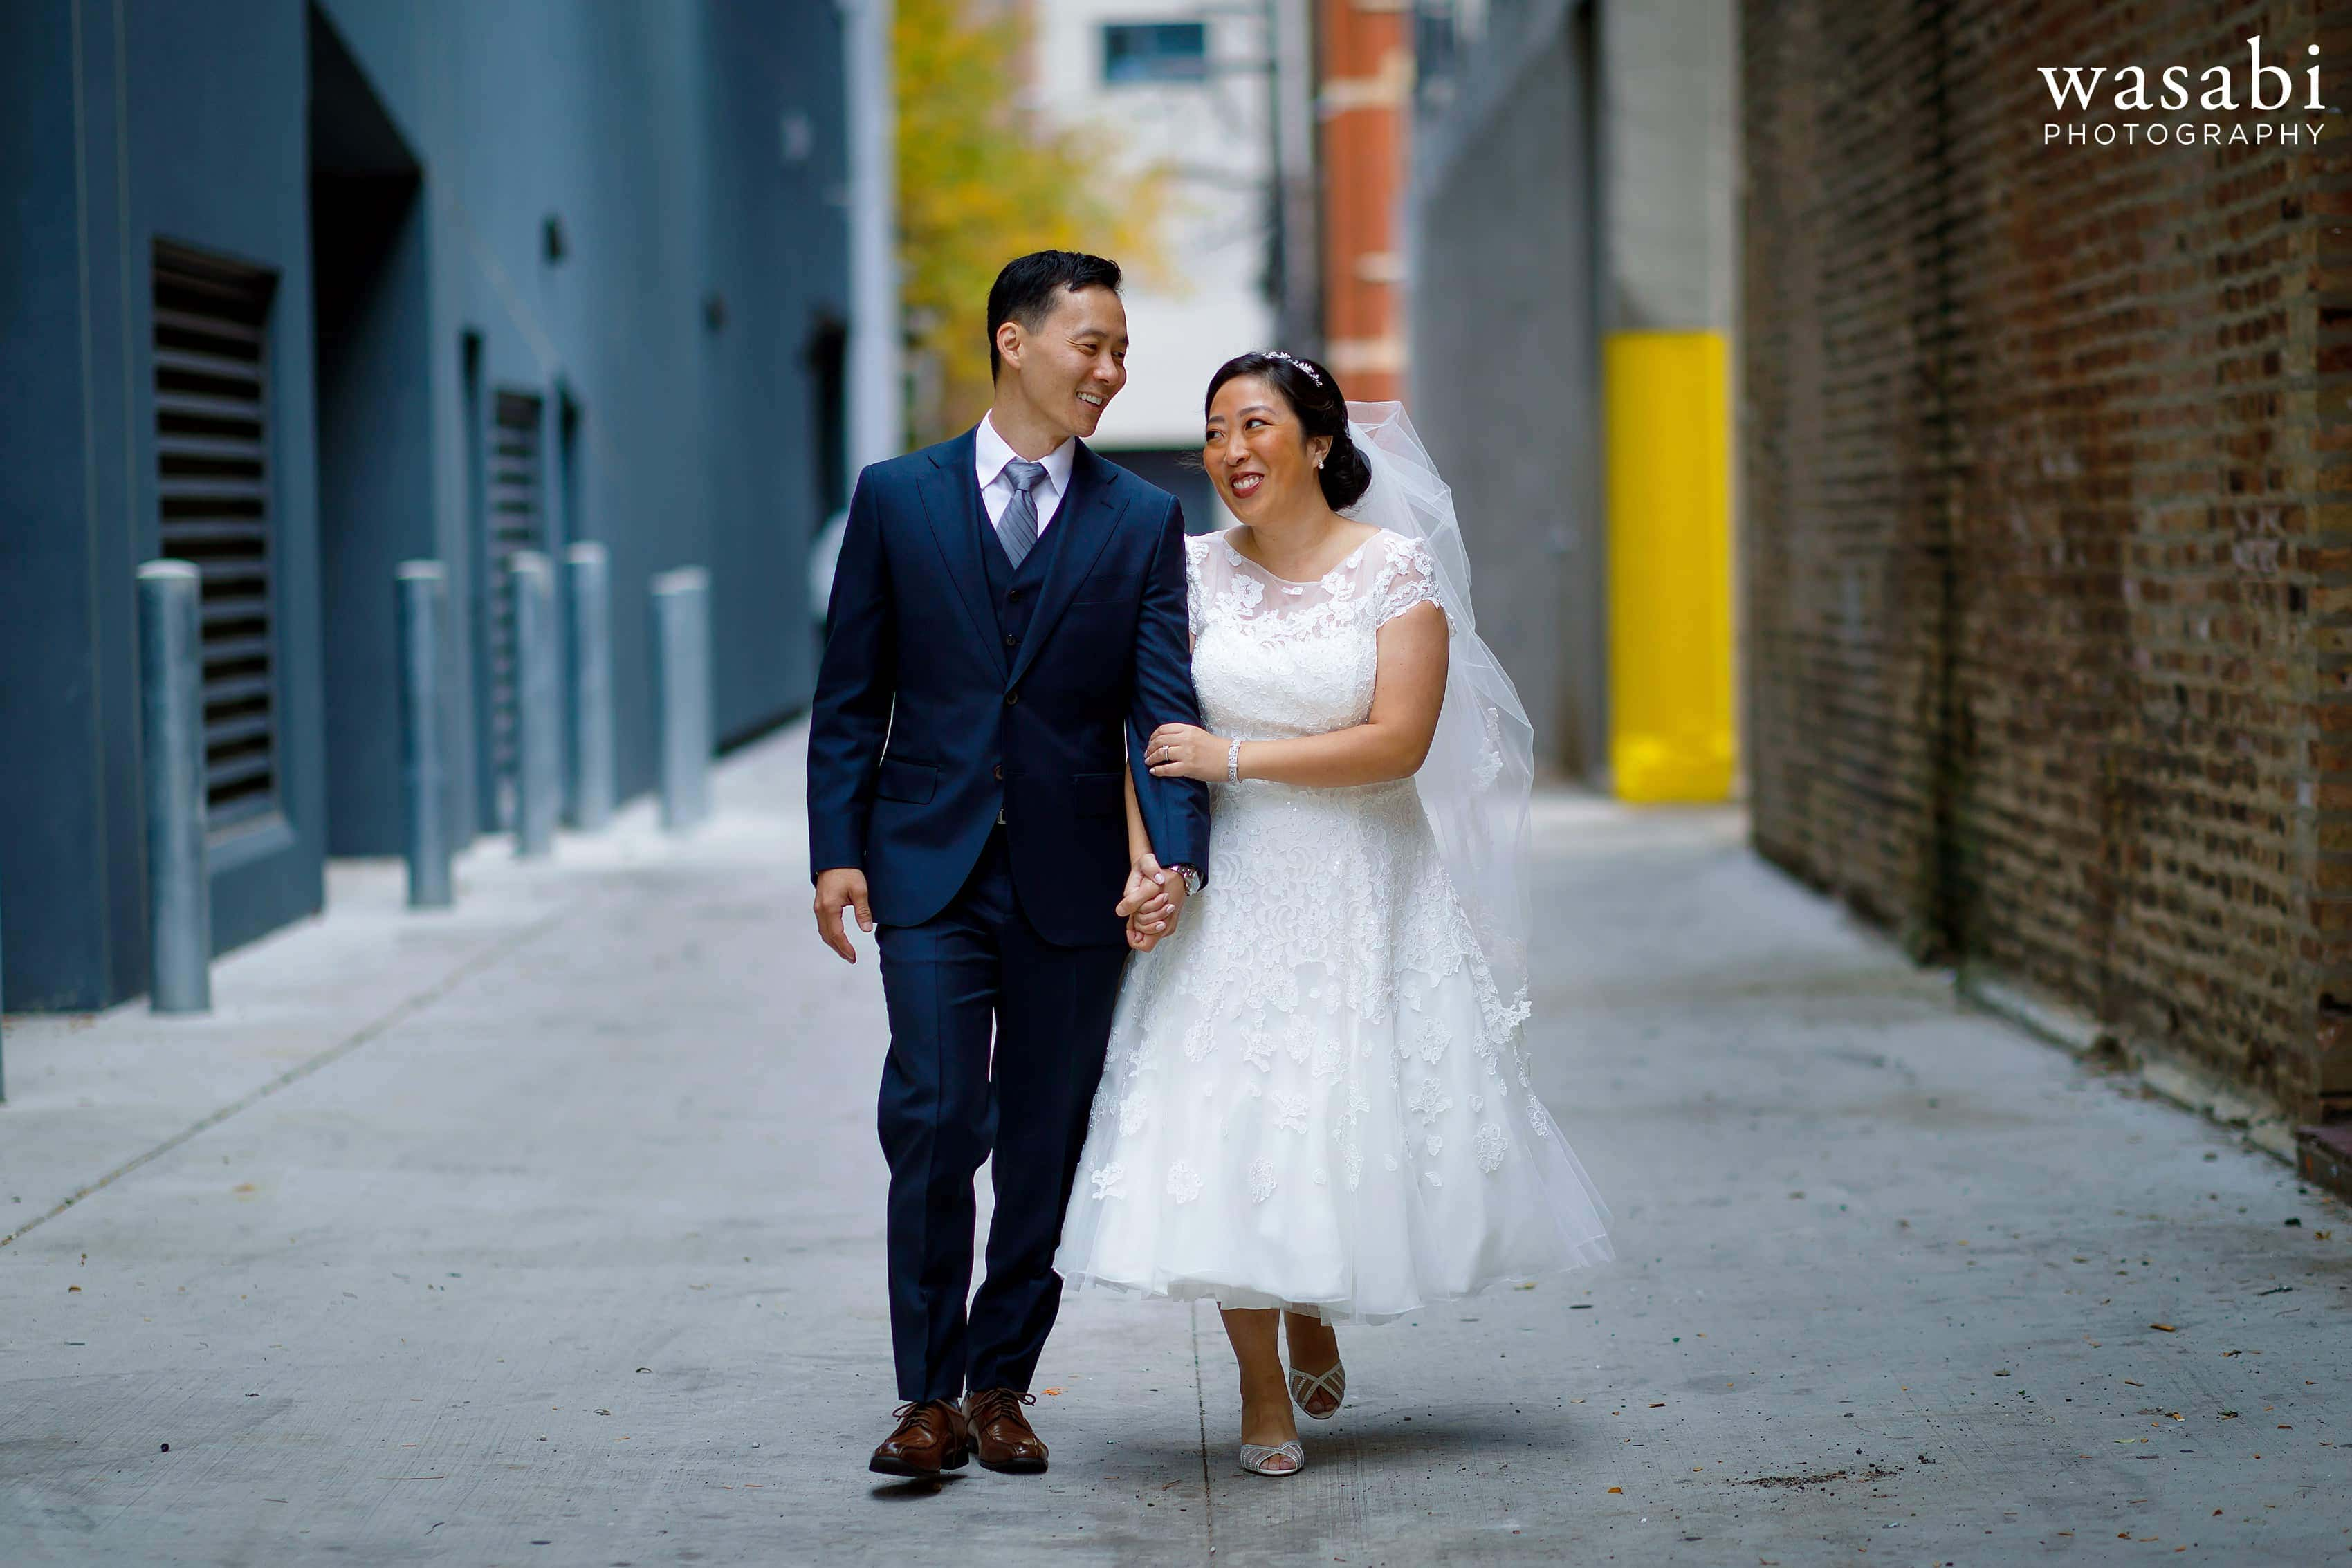 bride and groom laugh and smile while walking down alley during first look in alley with exposed brick wall in Chicago